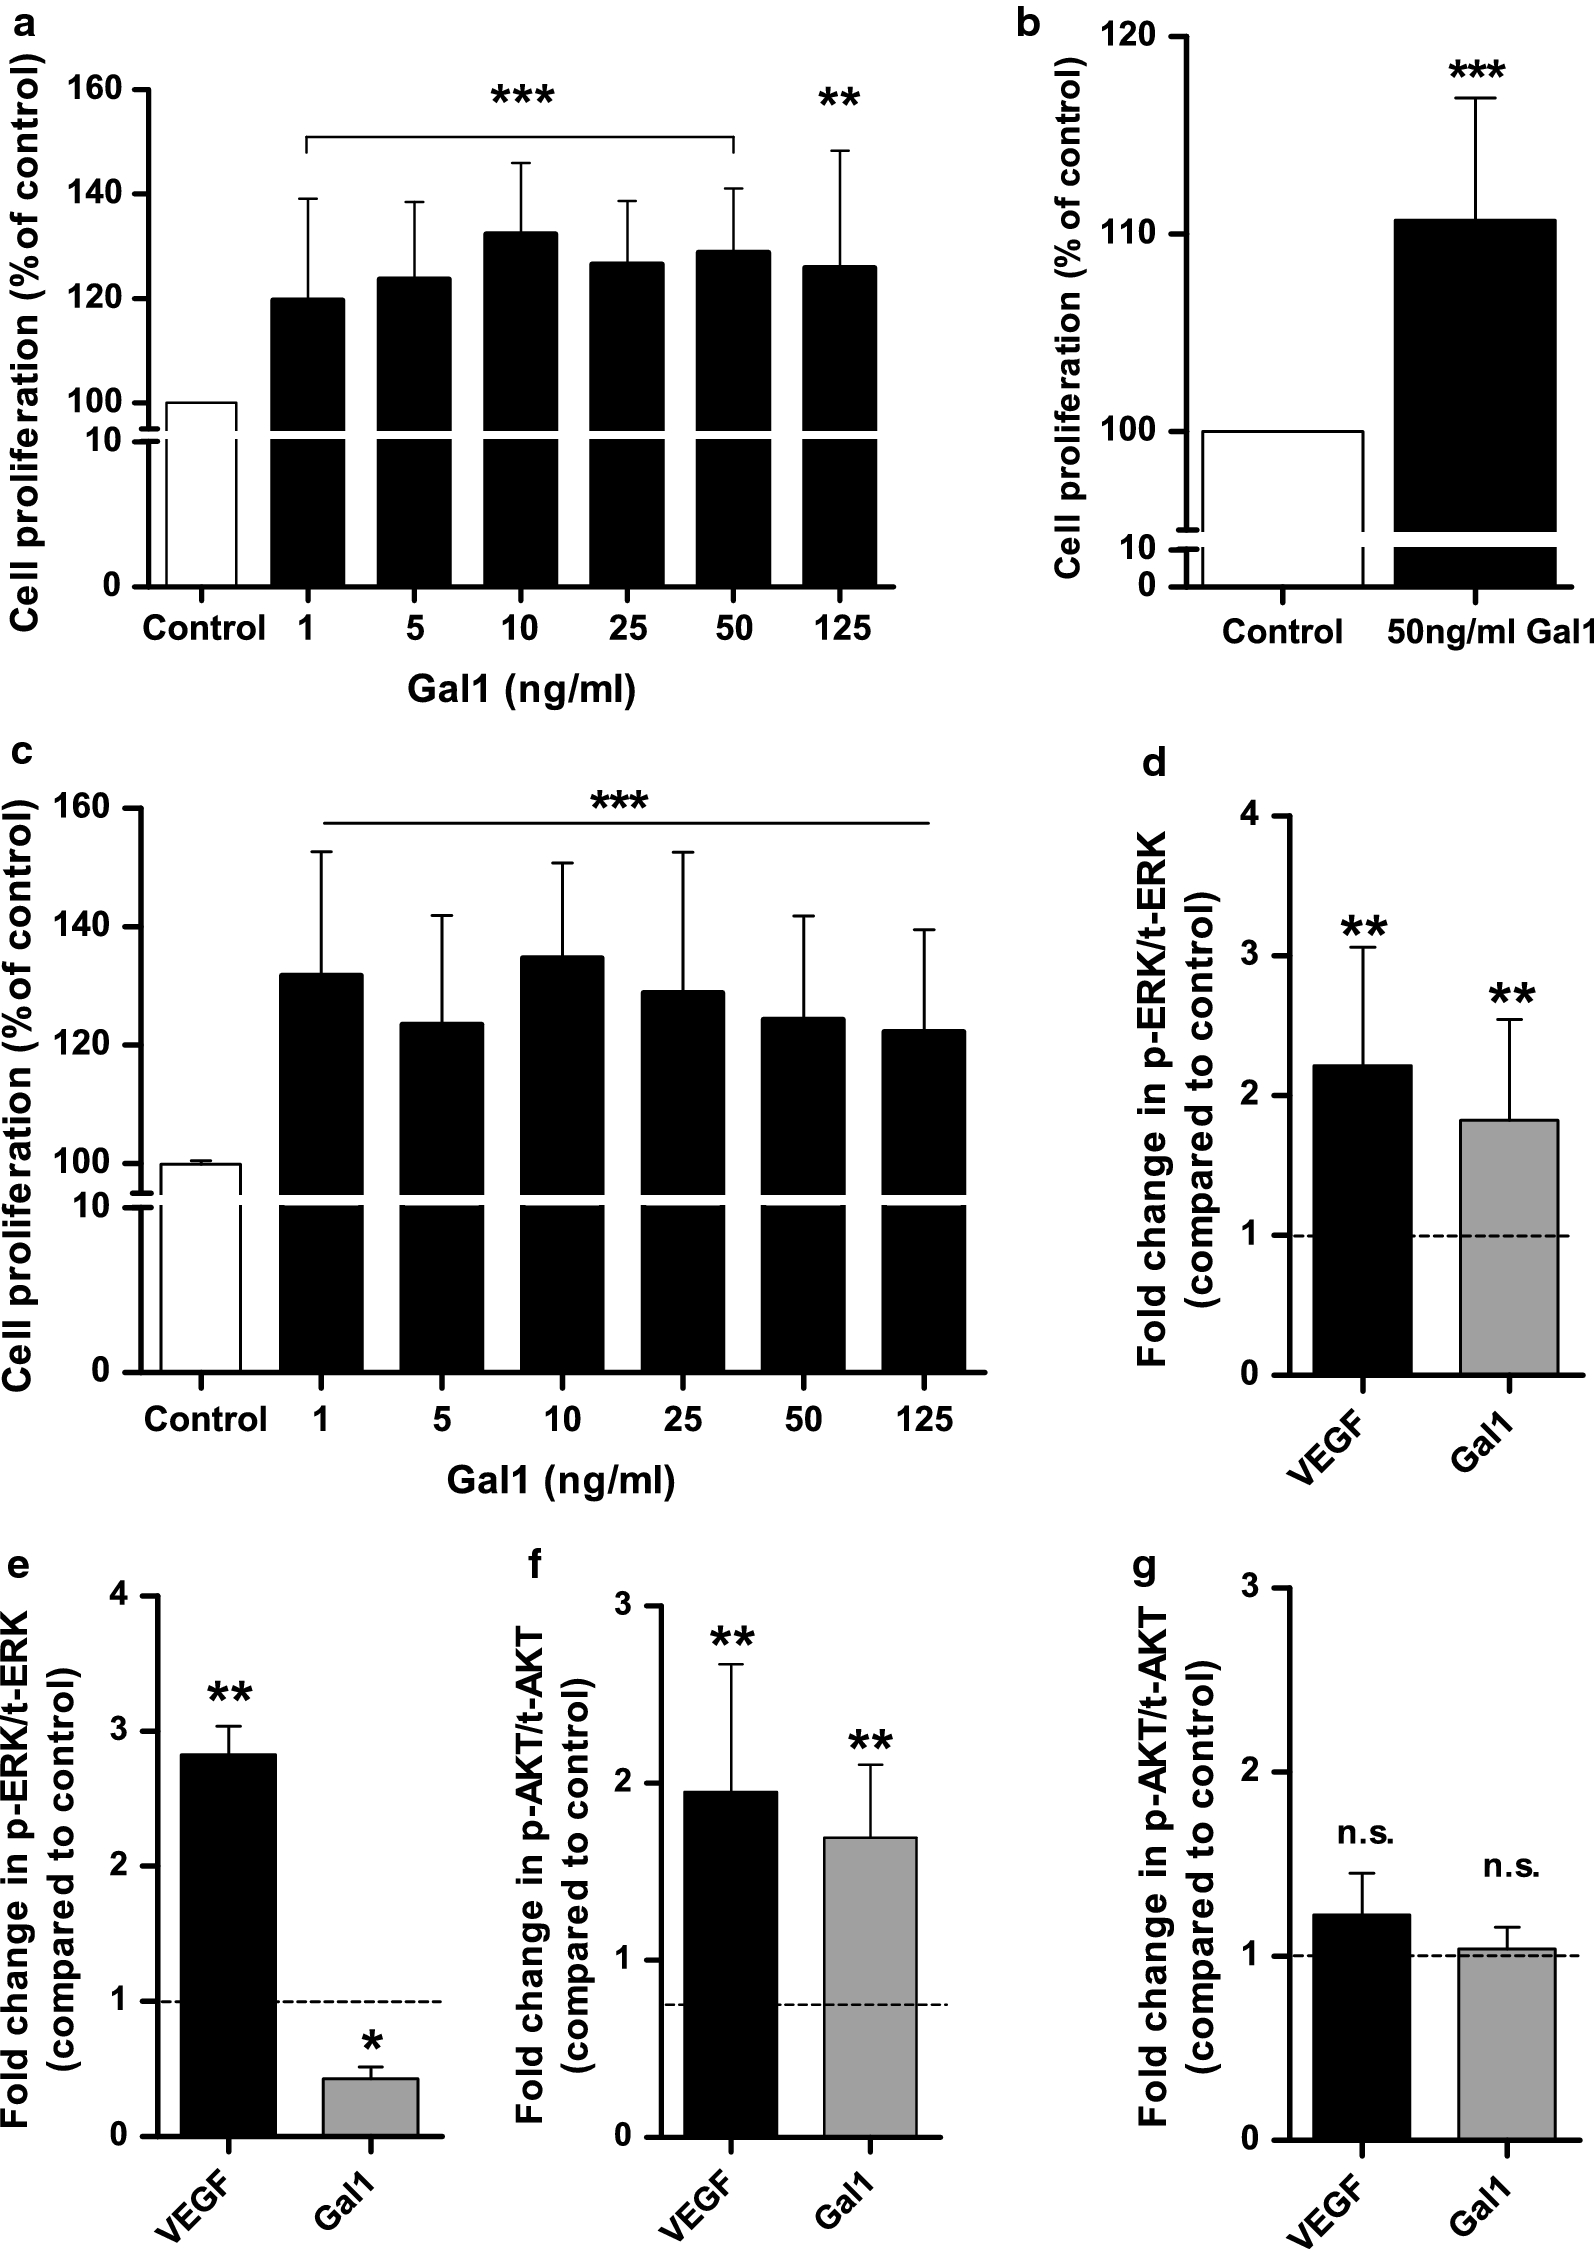 Cathepsin L-induced galectin-1 may act as a proangiogenic